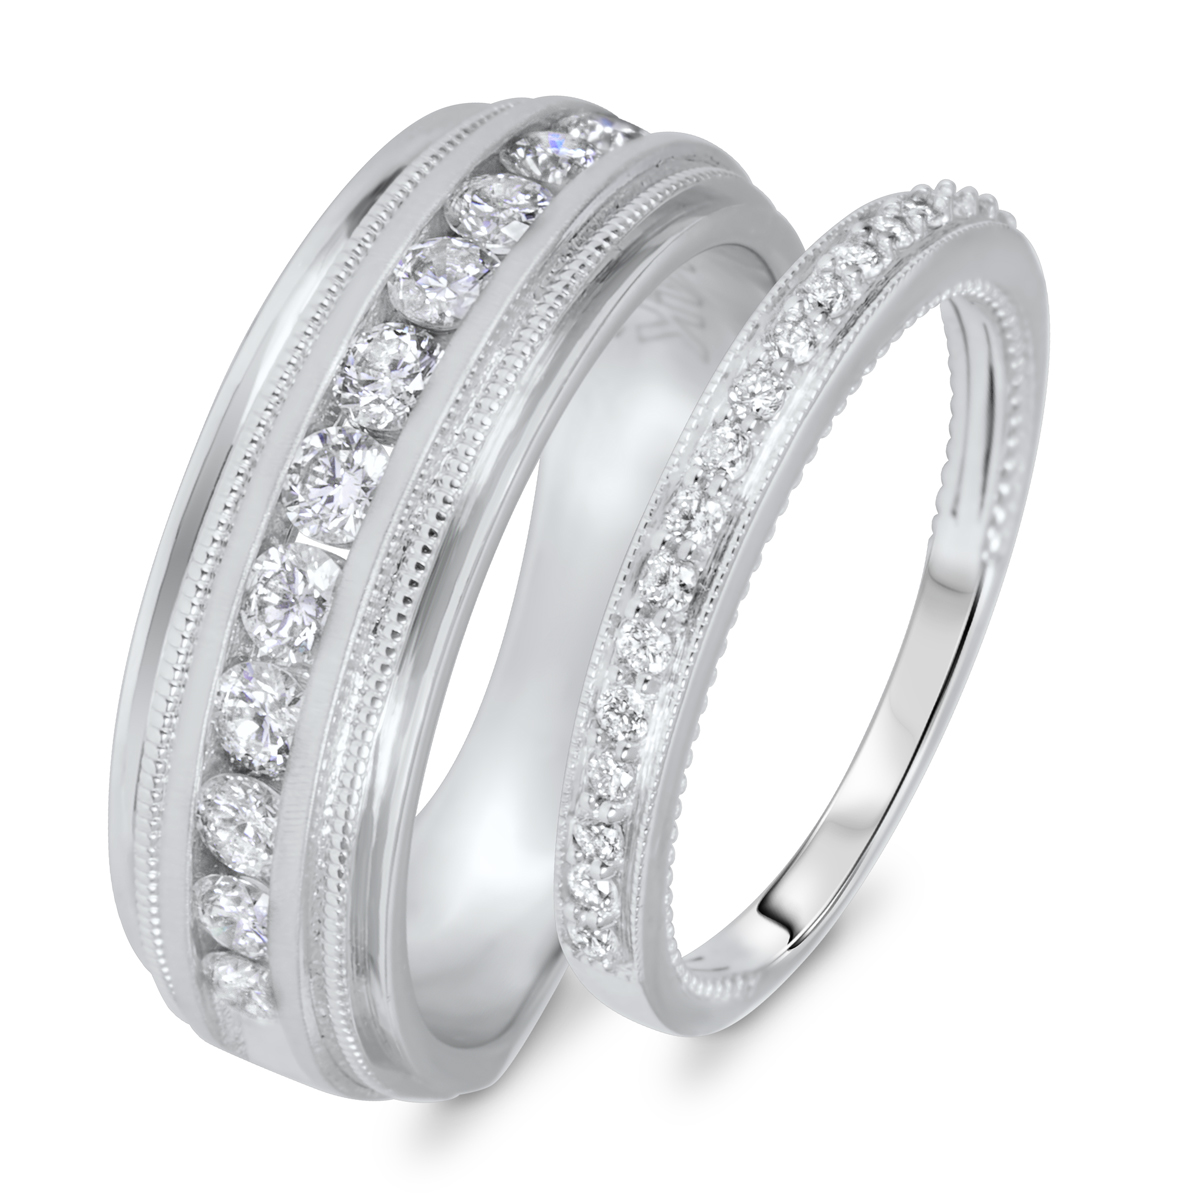 3 4 Carat TW Round Cut Diamond His And Hers Wedding Band